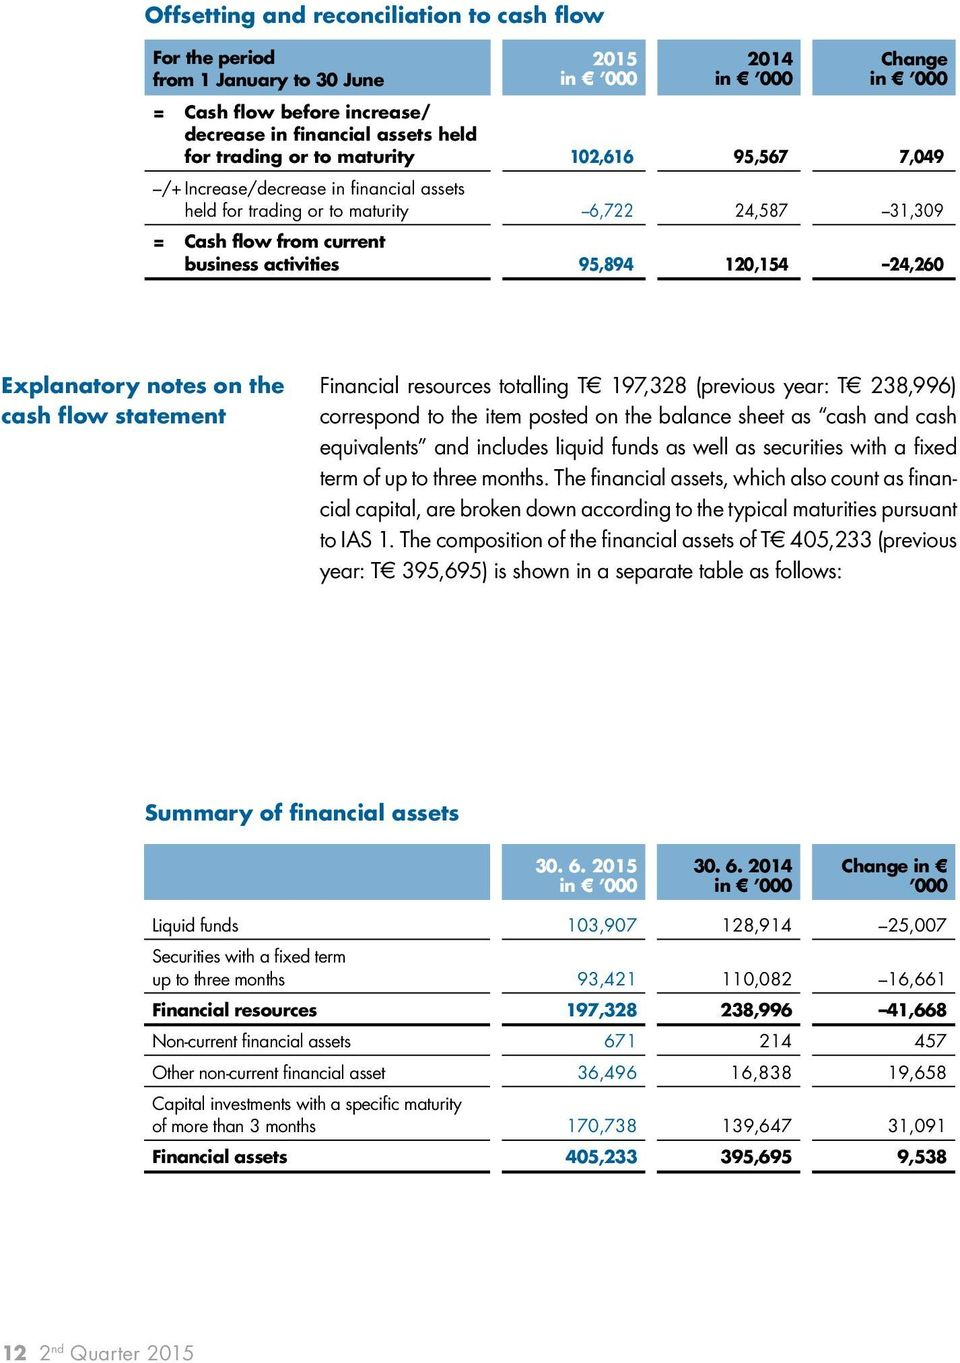 cash flow statement Financial resources totalling T 197,328 (previous year: T 238,996) correspond to the item posted on the balance sheet as cash and cash equivalents and includes liquid funds as